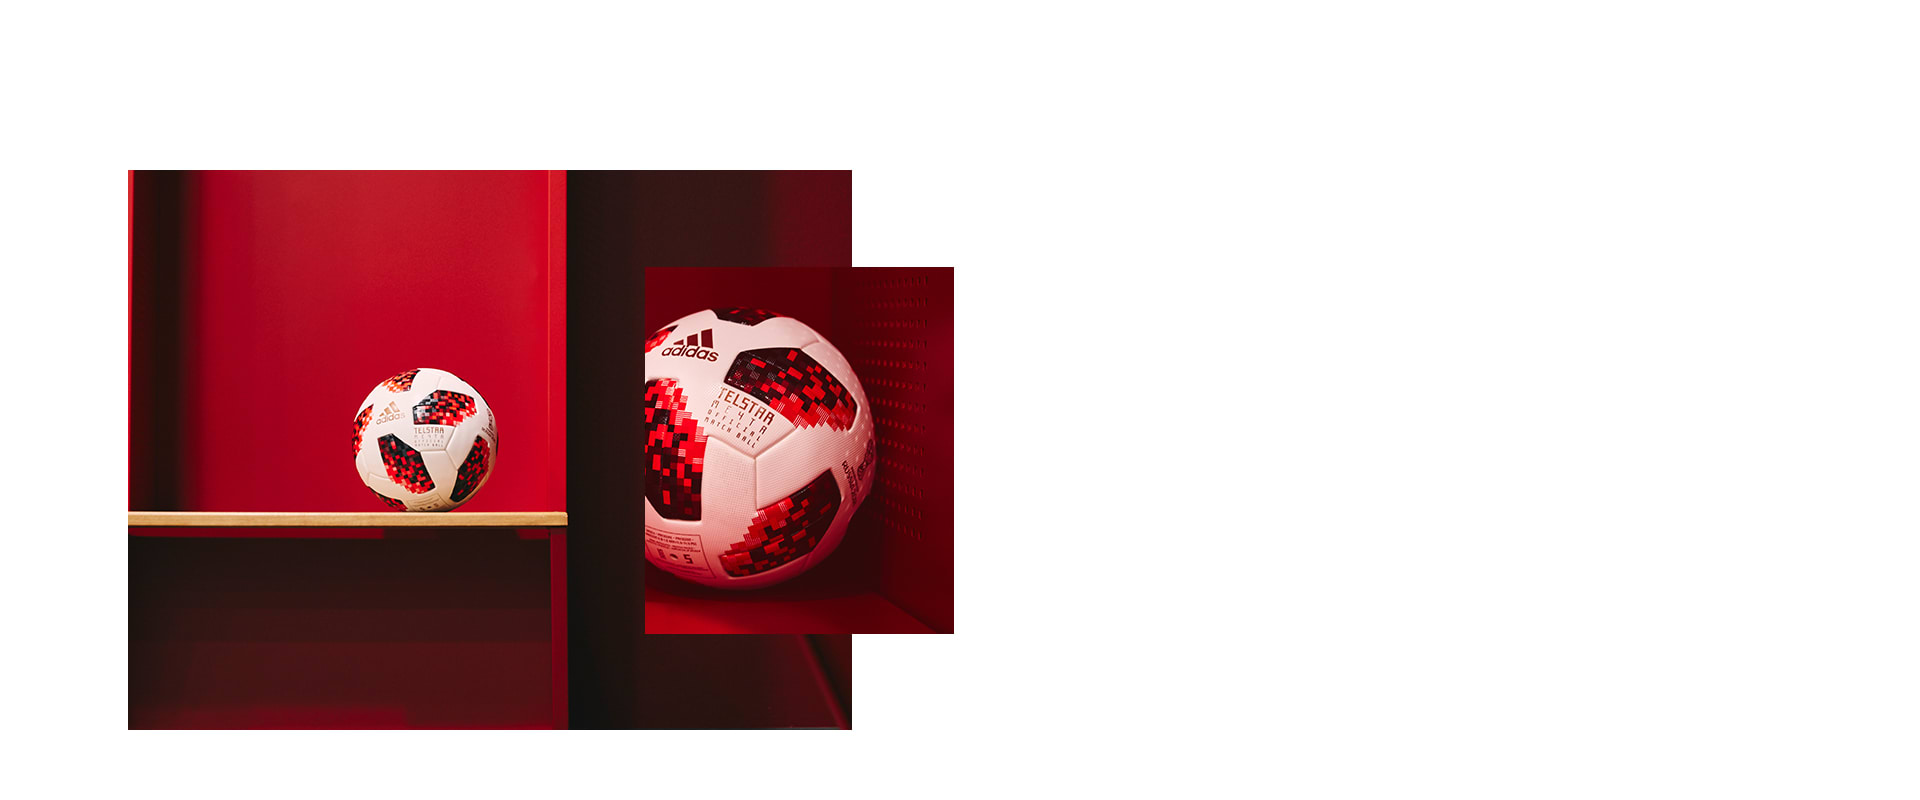 83110a4d0 TAP. CONNECT. CREATE. Telstar 18, the first NFC connected Official Match  Ball for the 2018 FIFA World Cup™.